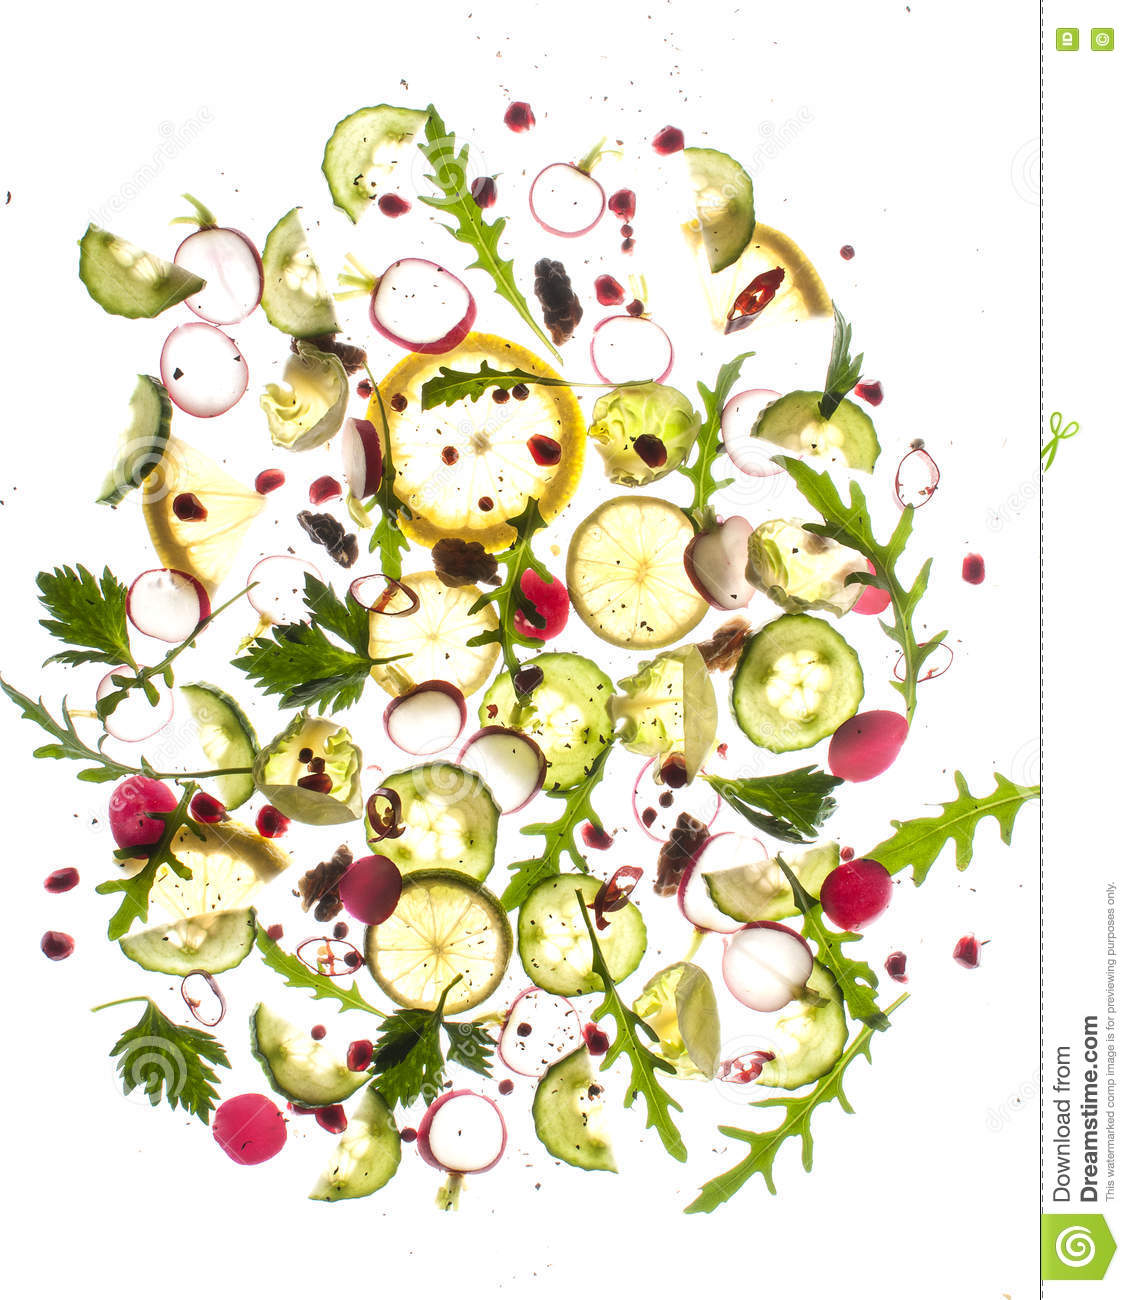 Flying Food Kiwi Lime Parsley Sald Brussel Sprouts Stock Photo